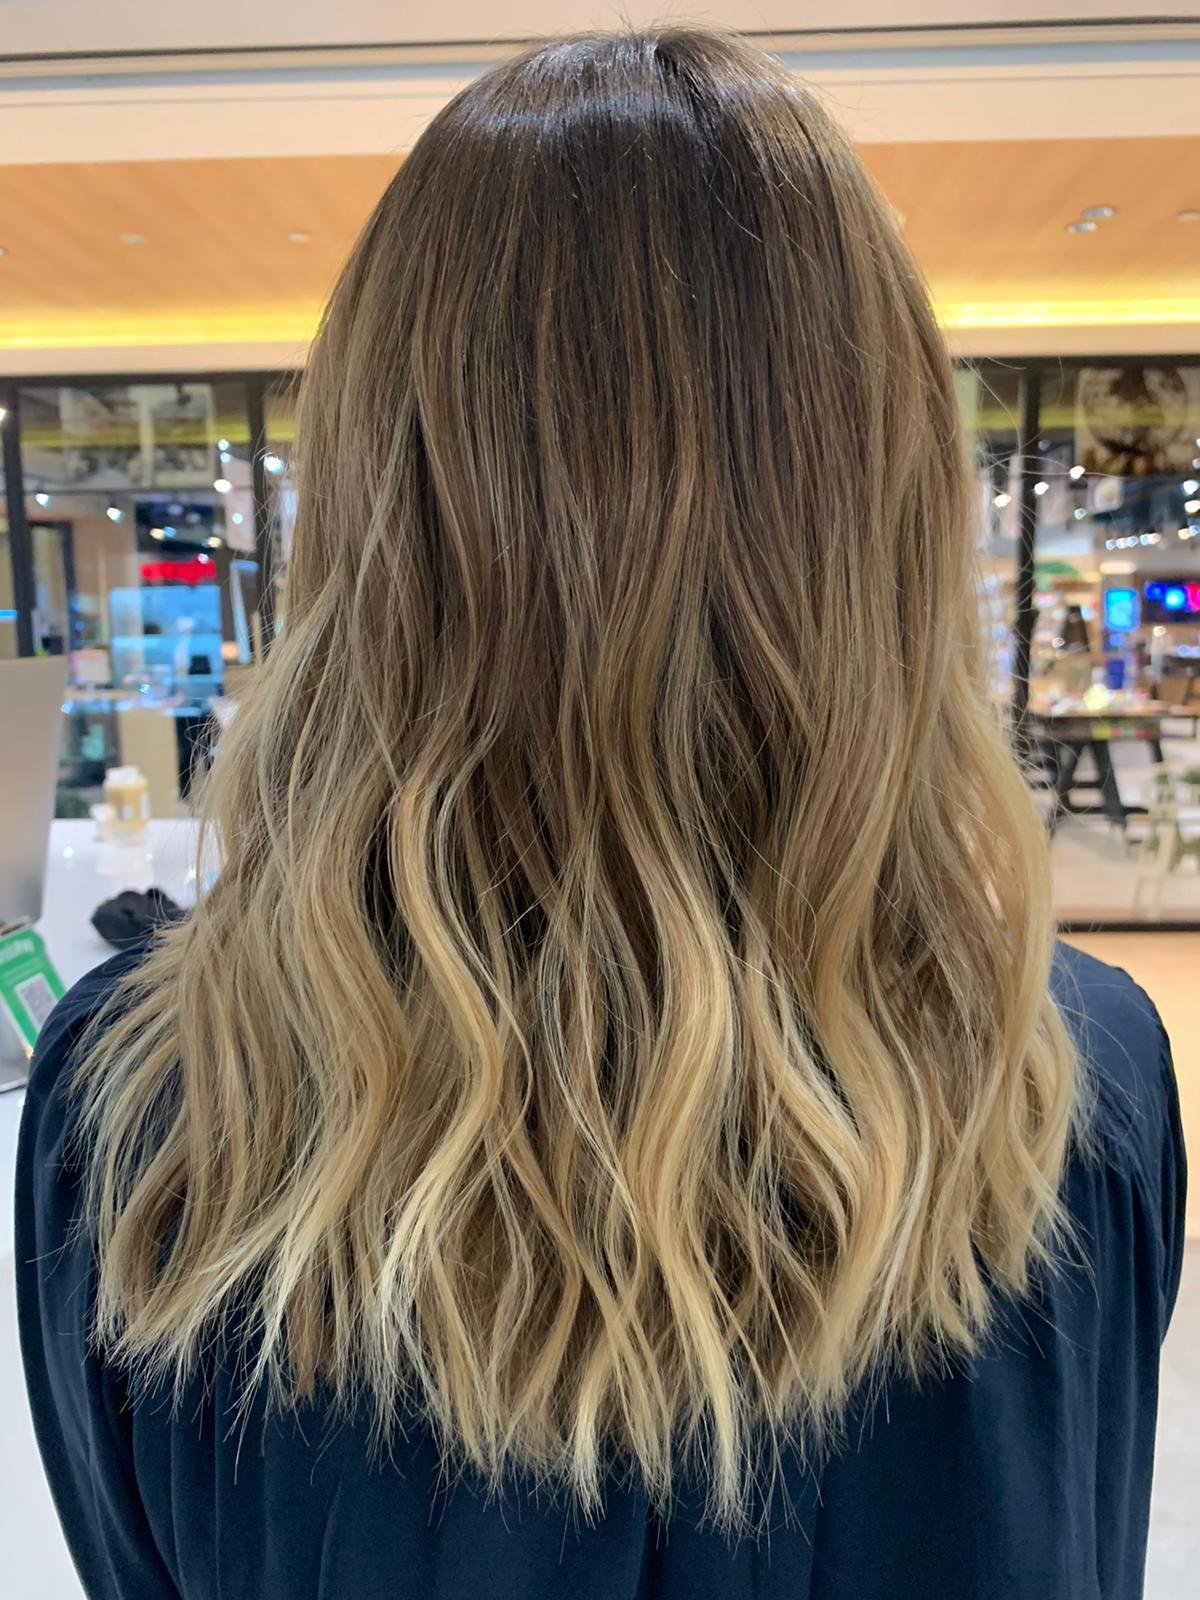 5 Best Hair Salons In Singapore For A Refresh